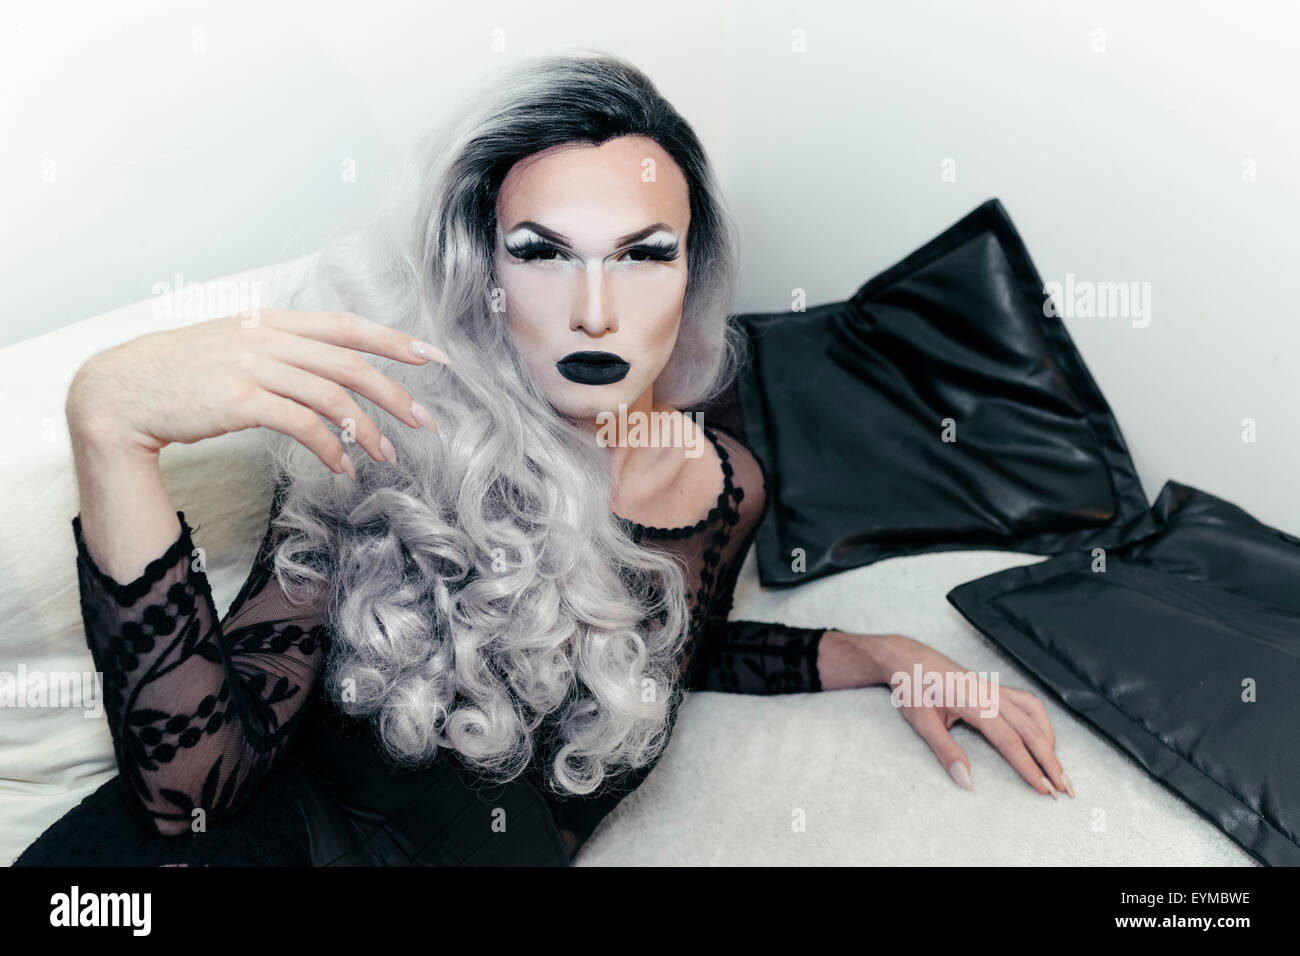 Male drag queen posing for pin-up style glamor portrait at home. Stock Photo